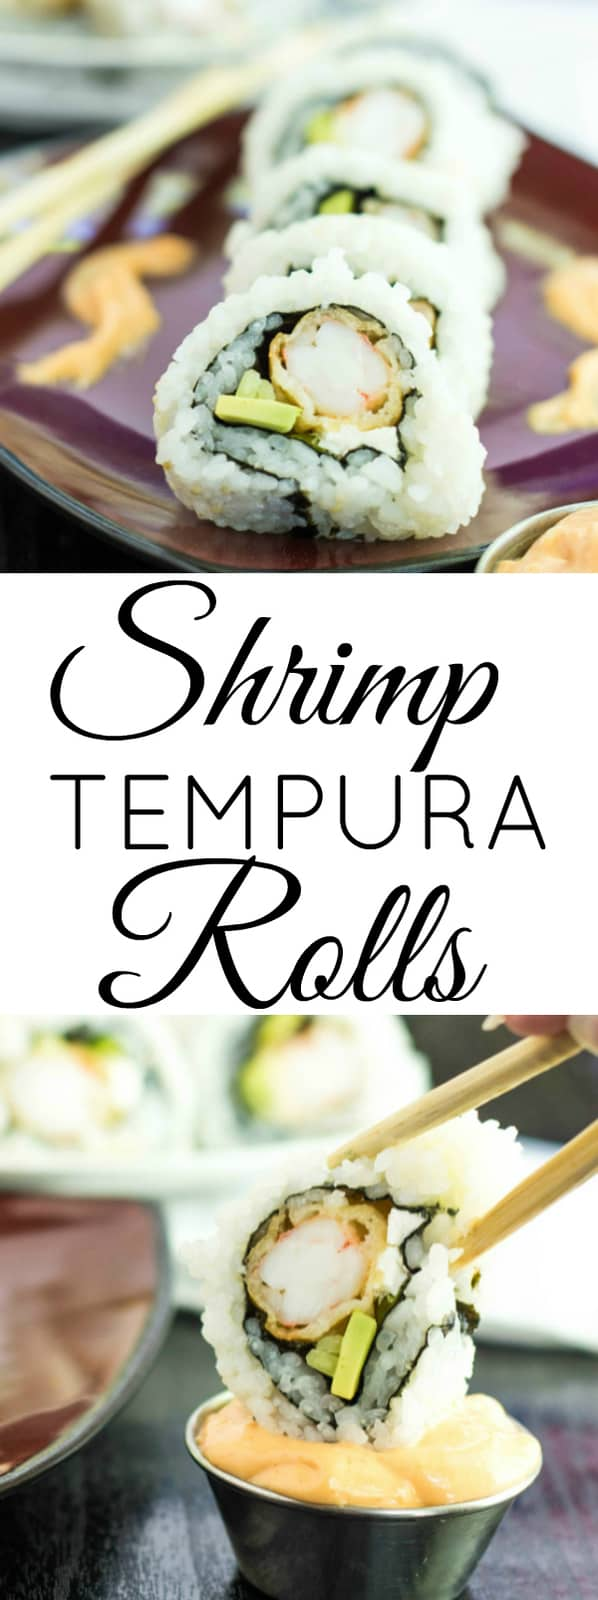 Easy, tasty, delicious and deep-fried! These Shrimp Tempura Rolls are a great addition to any dinner party!